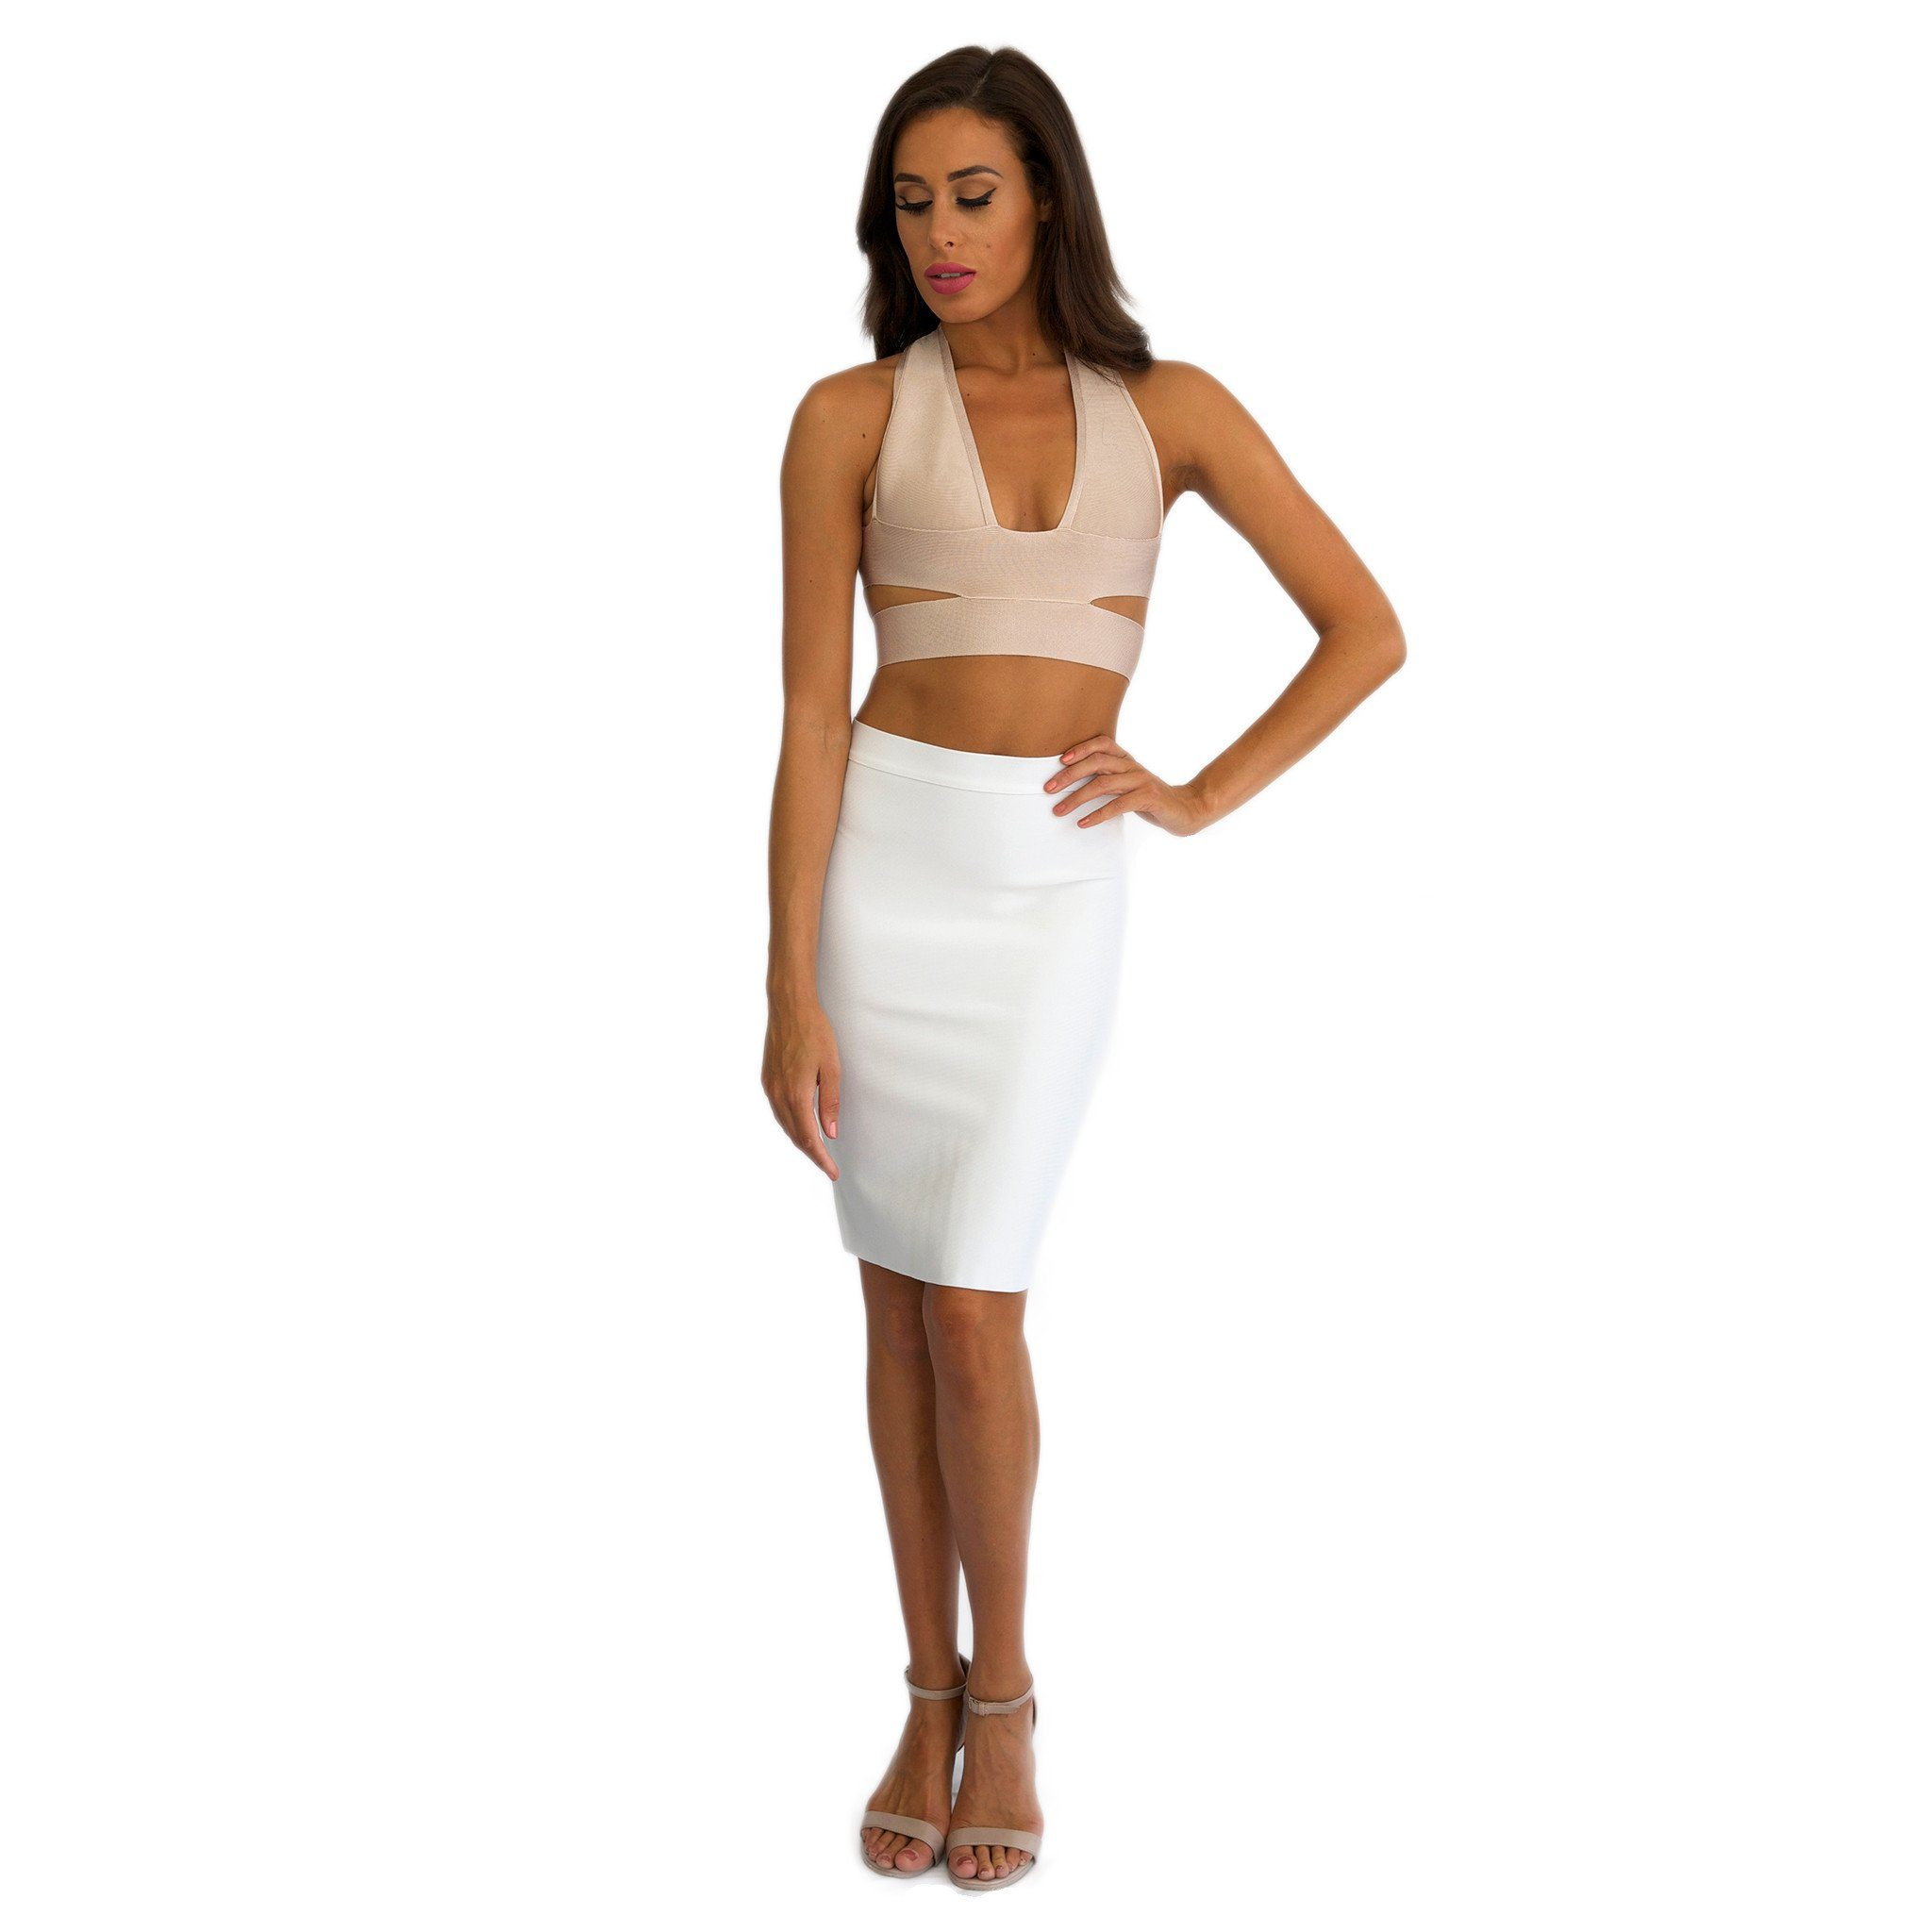 20ec7f18e538c5 ... Kylie Jenner inspired outfit featuring stretchy thick quality two-piece  bandage dress set with nude ...